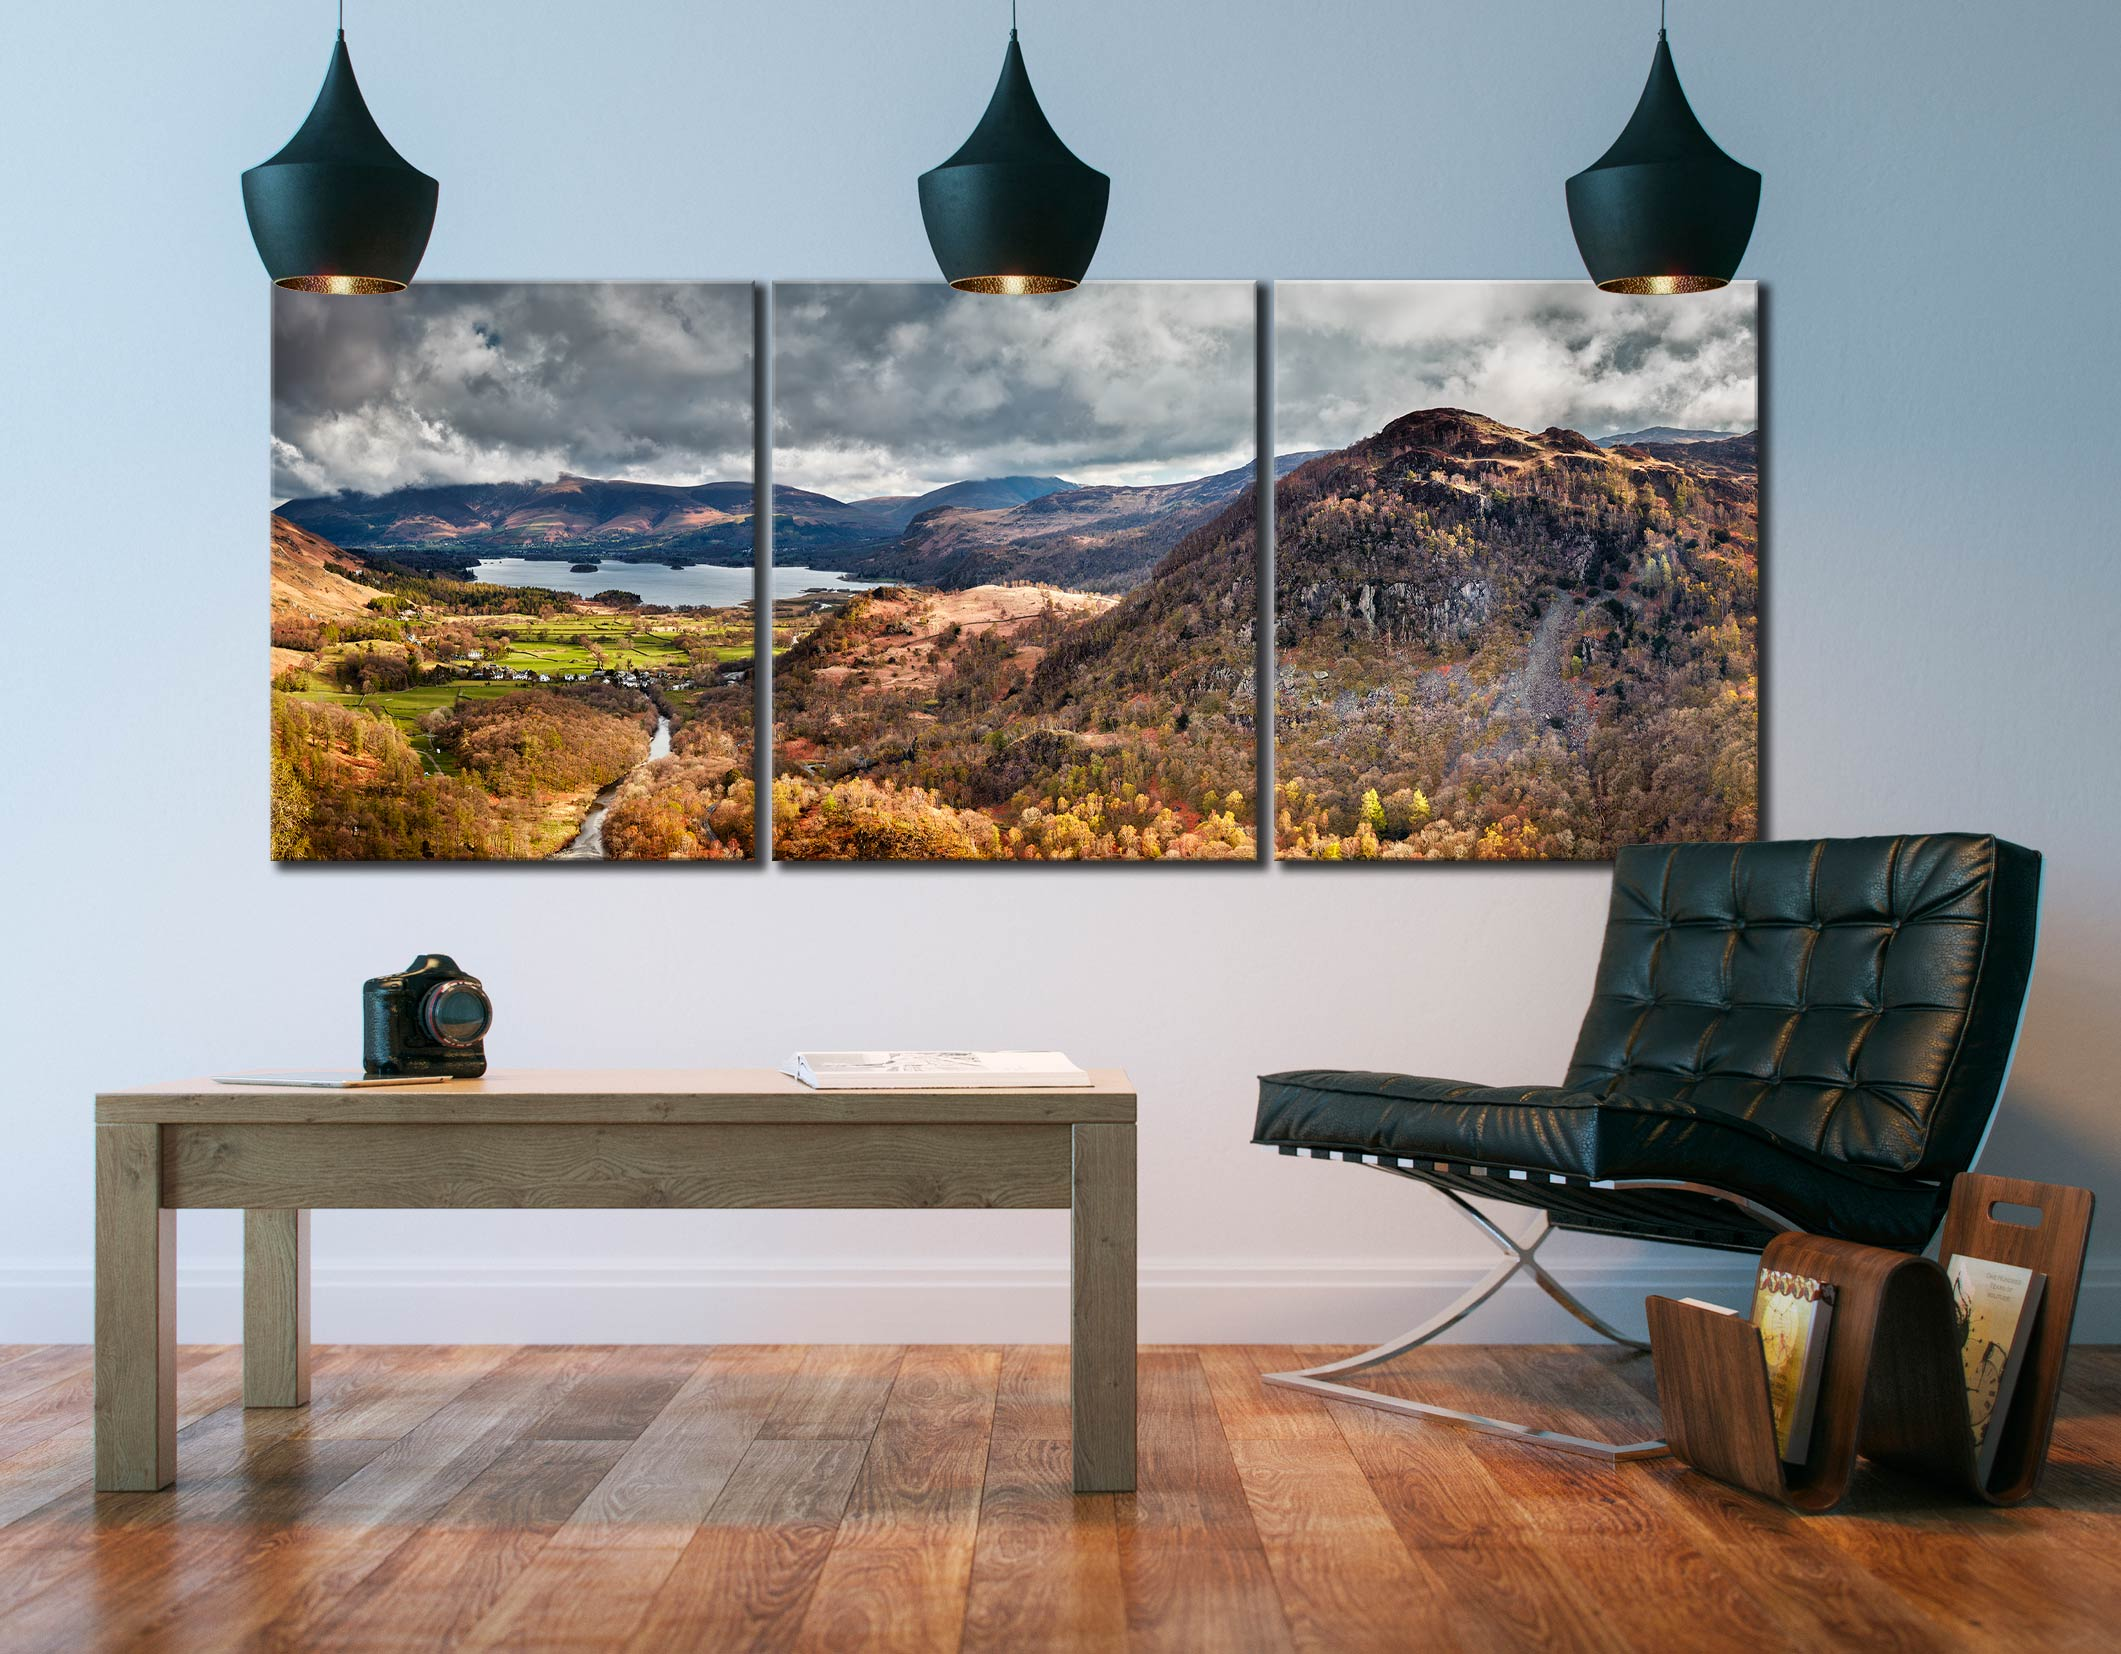 Kings How and Derwent Water  - 3 Panel Canvas on Wall